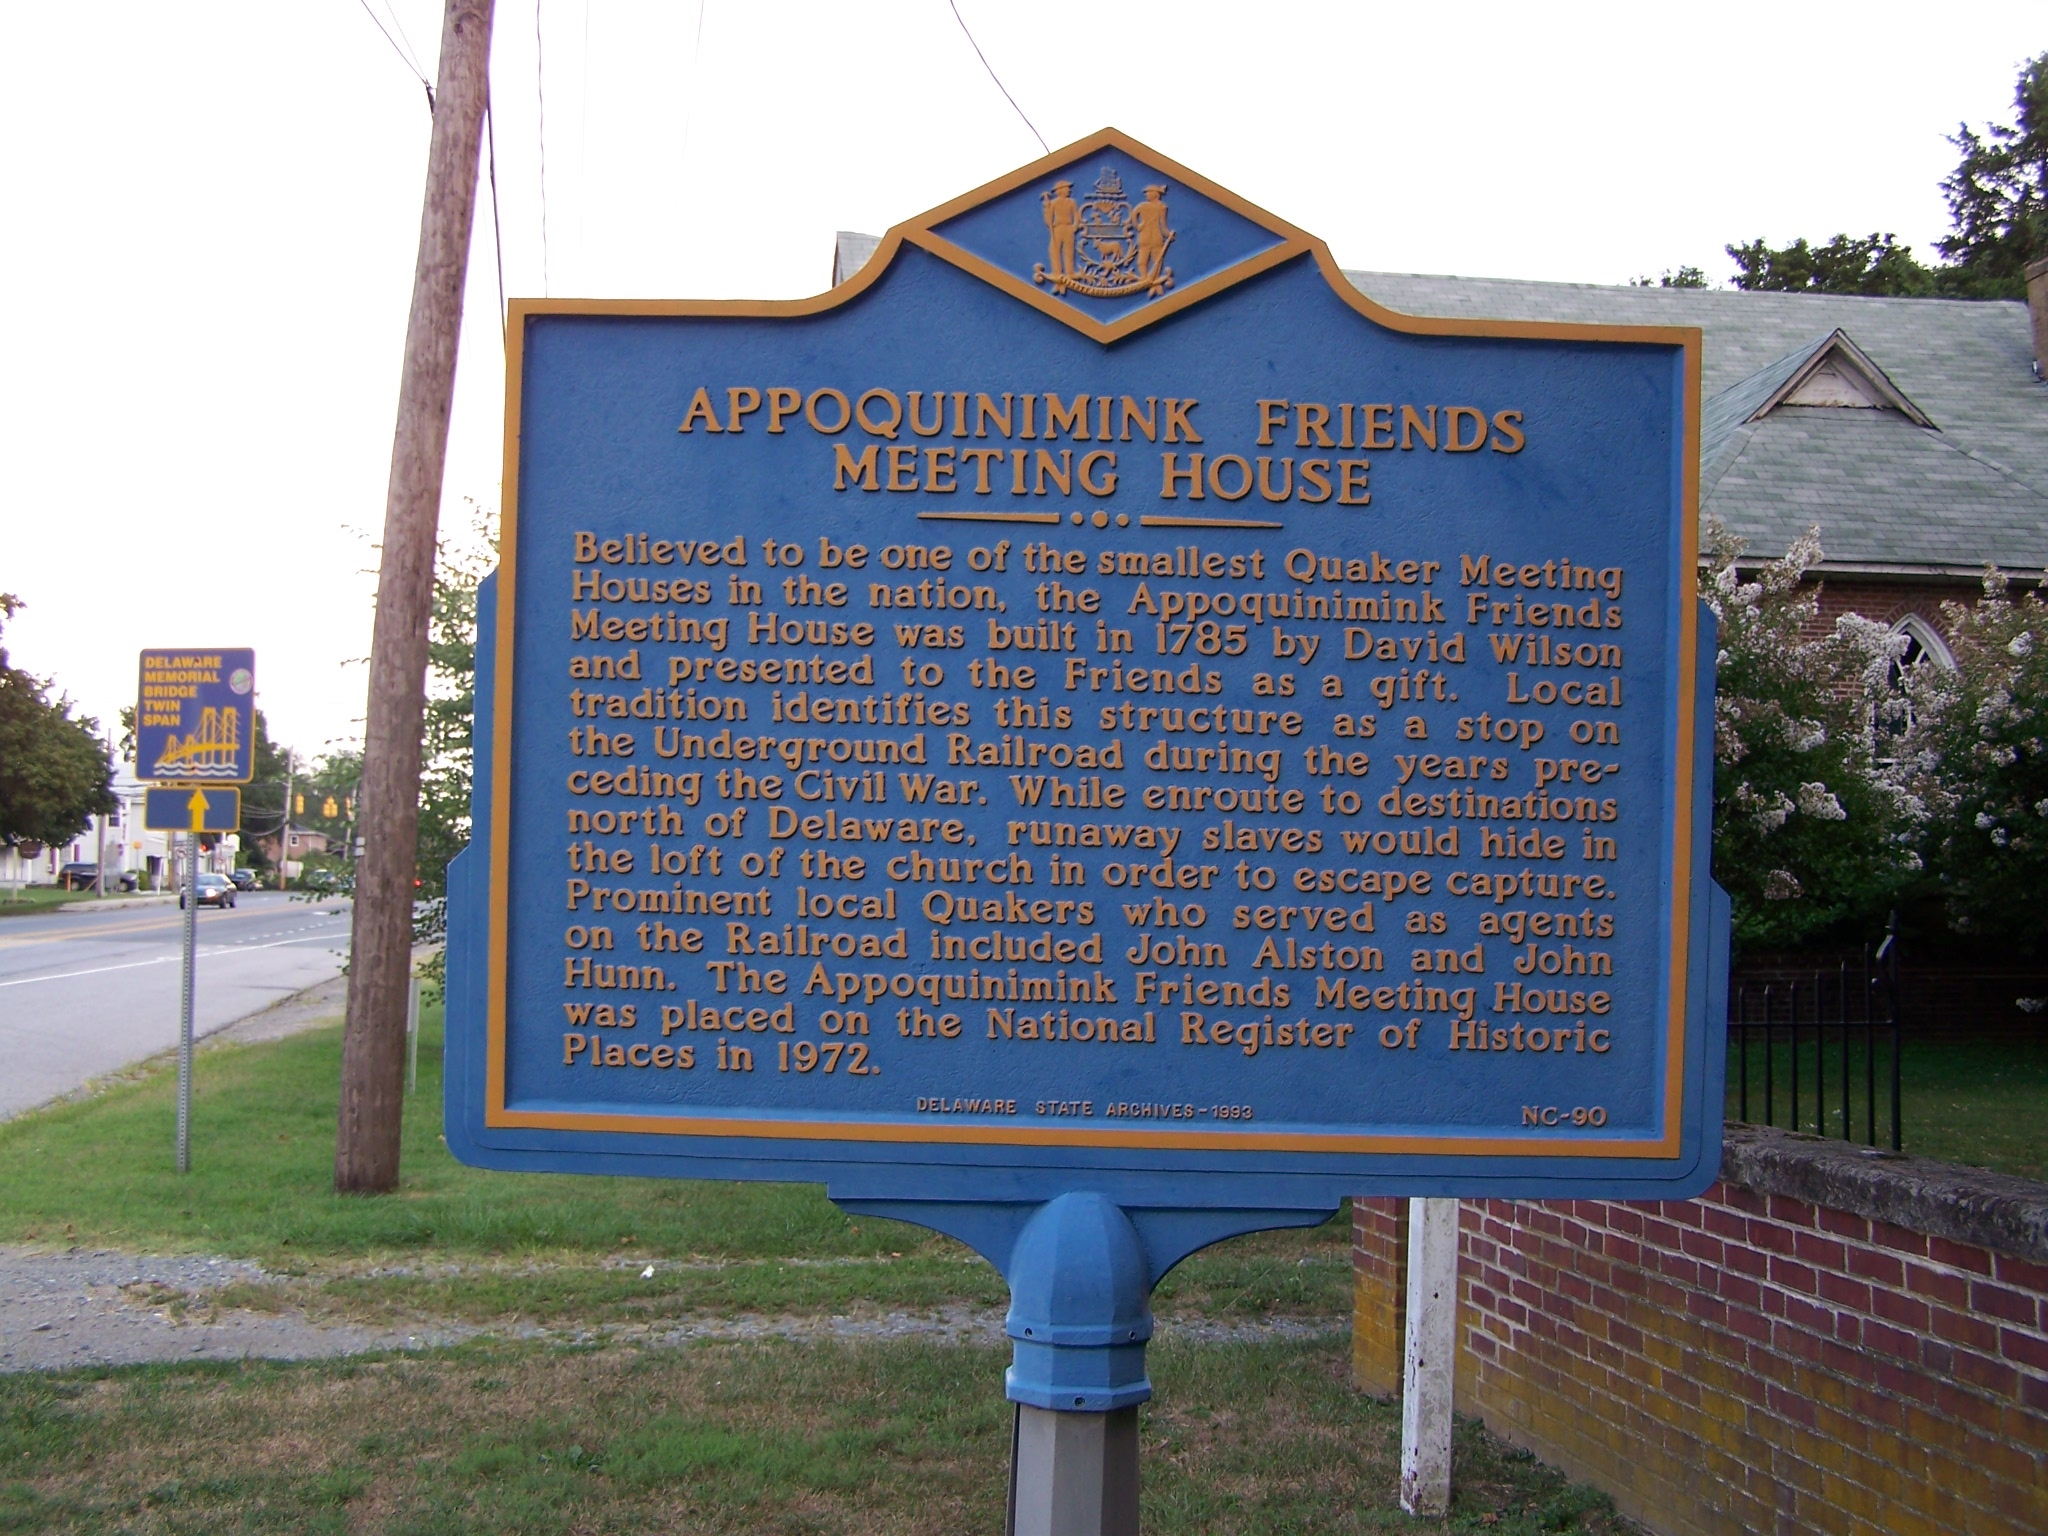 Appoquinimink Friends Meeting House Marker